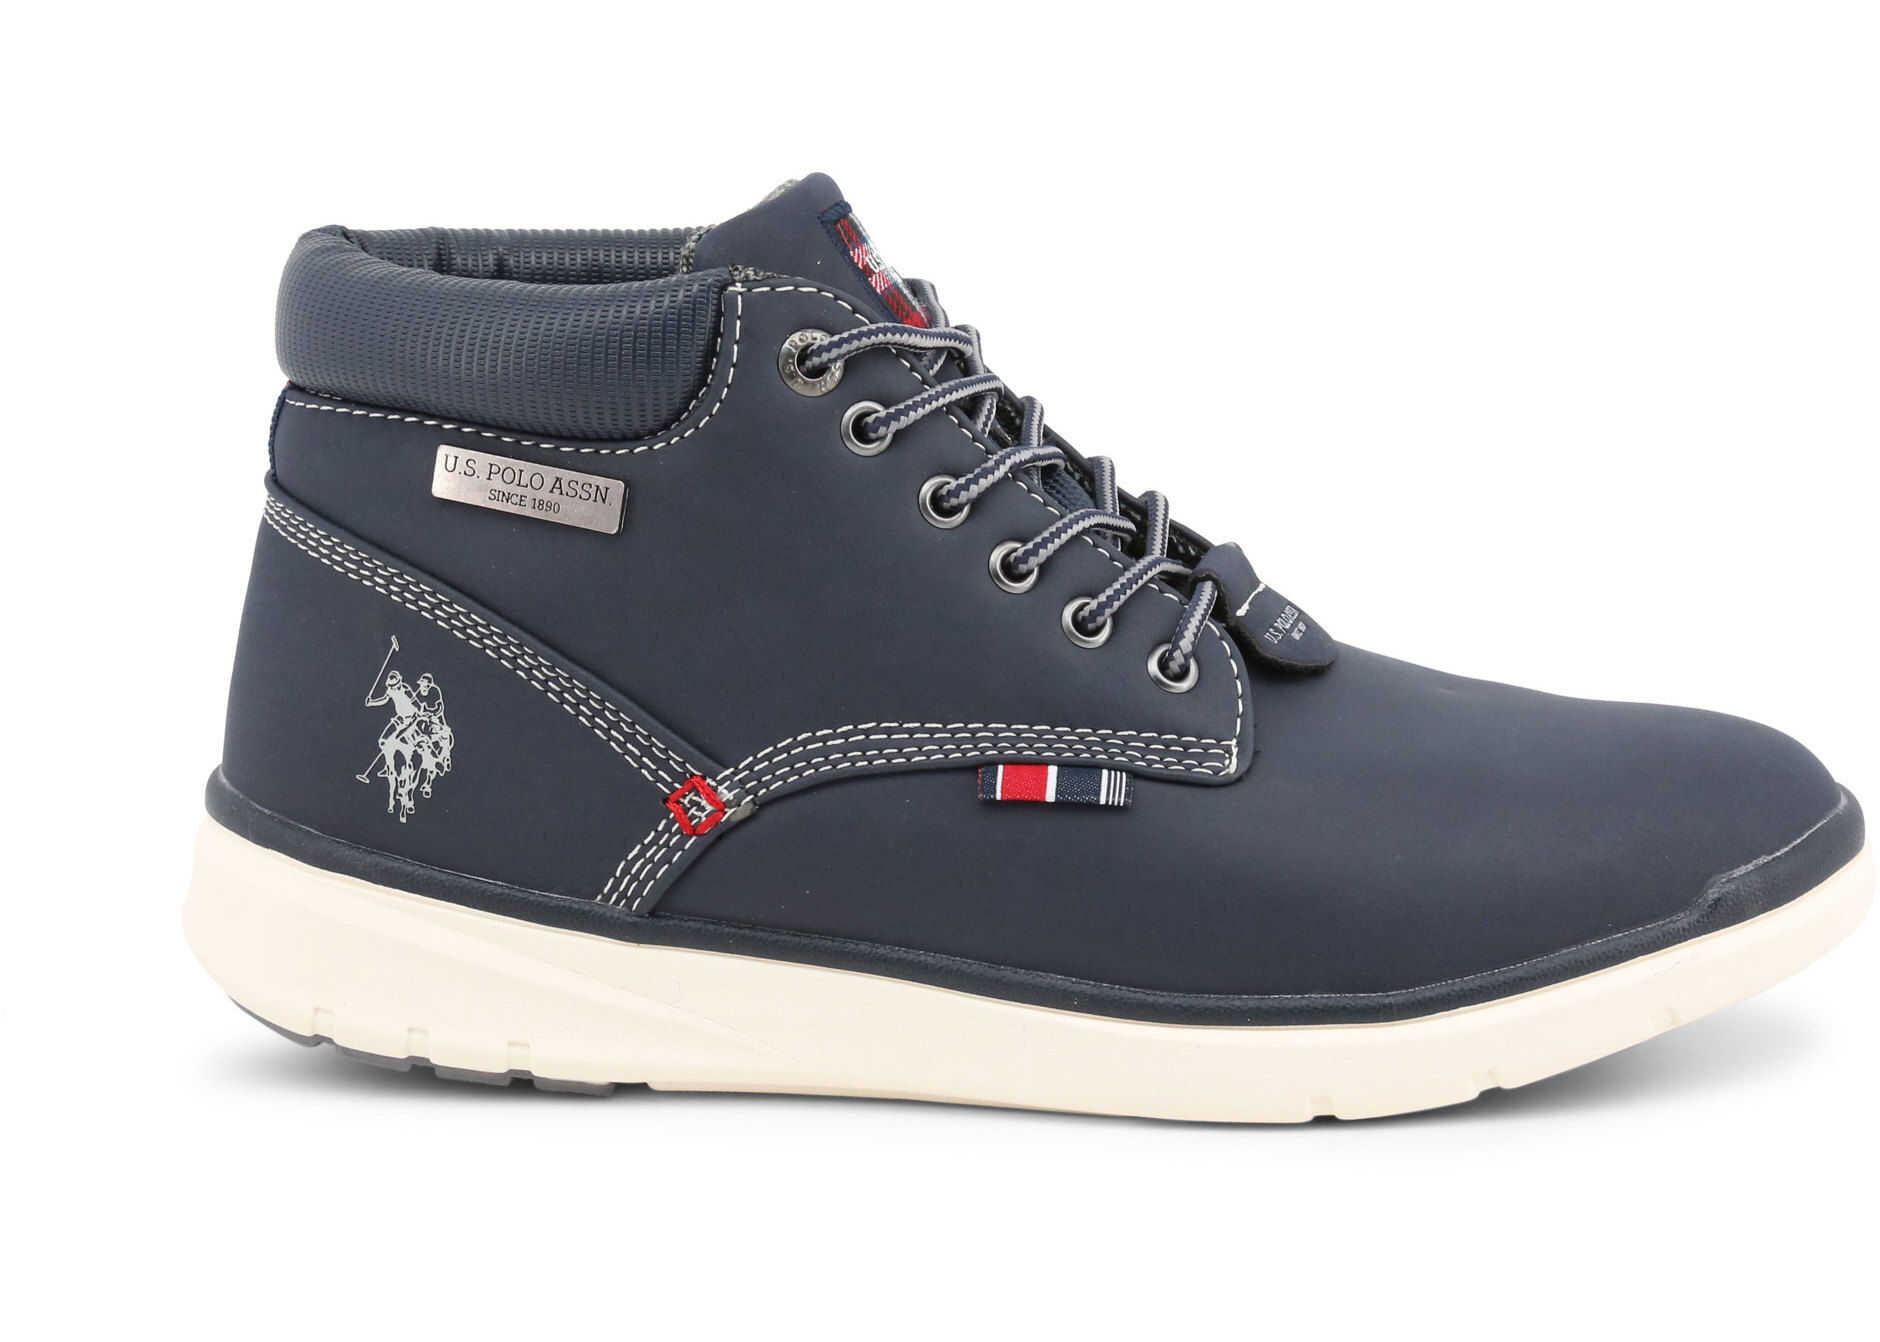 U.S. POLO ASSN. Ygor4081W8 Blue